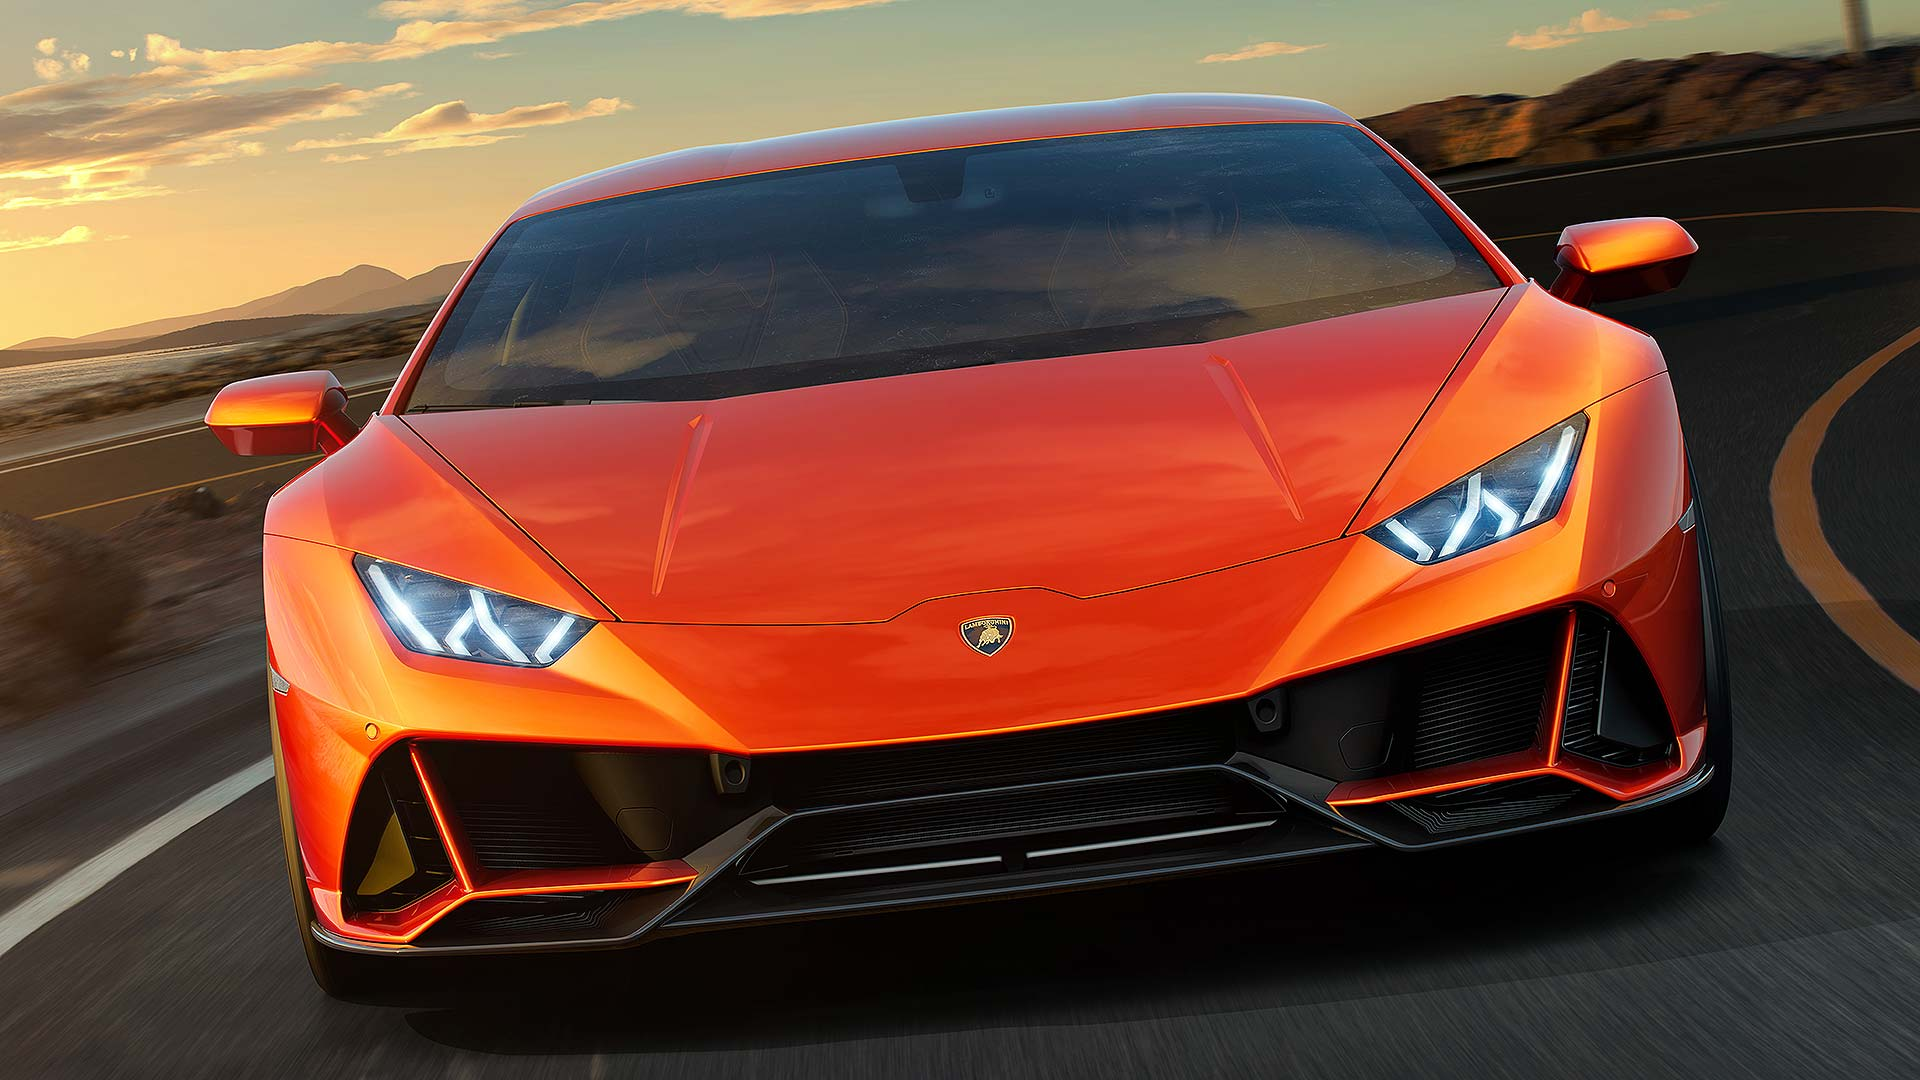 Bull Evolved 2019 Lamborghini Huracan Evo Revealed Motoring Research